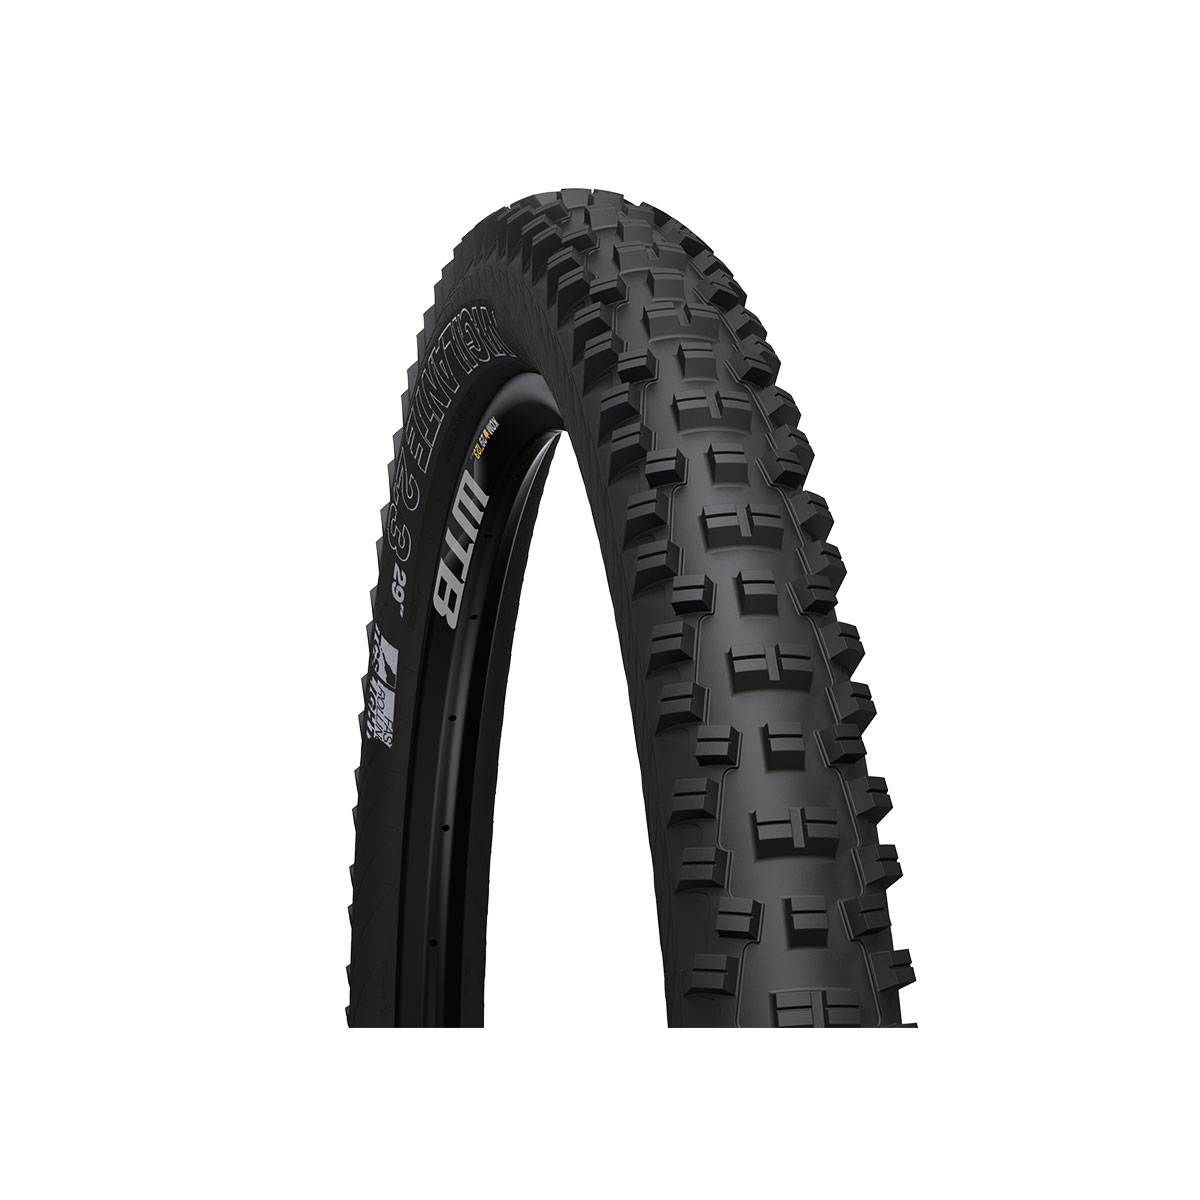 WTB Vigilante Light/Fast Rolling Tire 2.3 x 29""